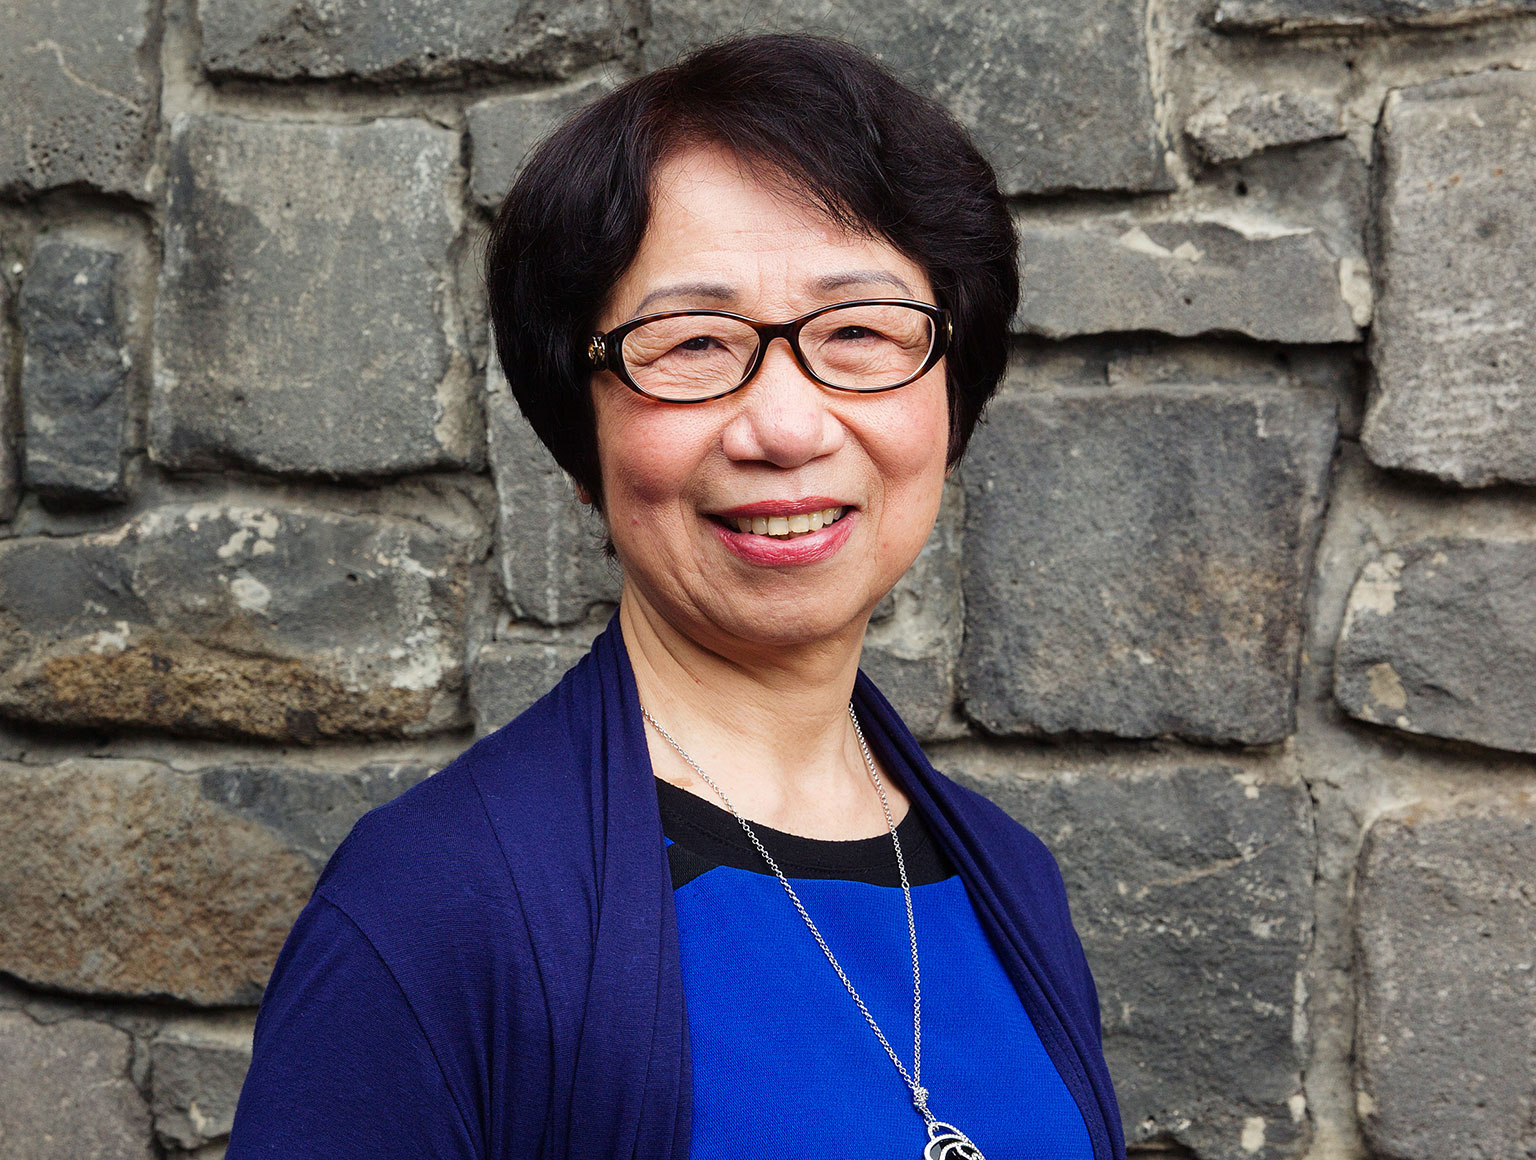 Kim Vu, counsellor with the Australian Vietnamese Women's Association's Gambling Counselling Program, poses for photo in front of bluestone wall